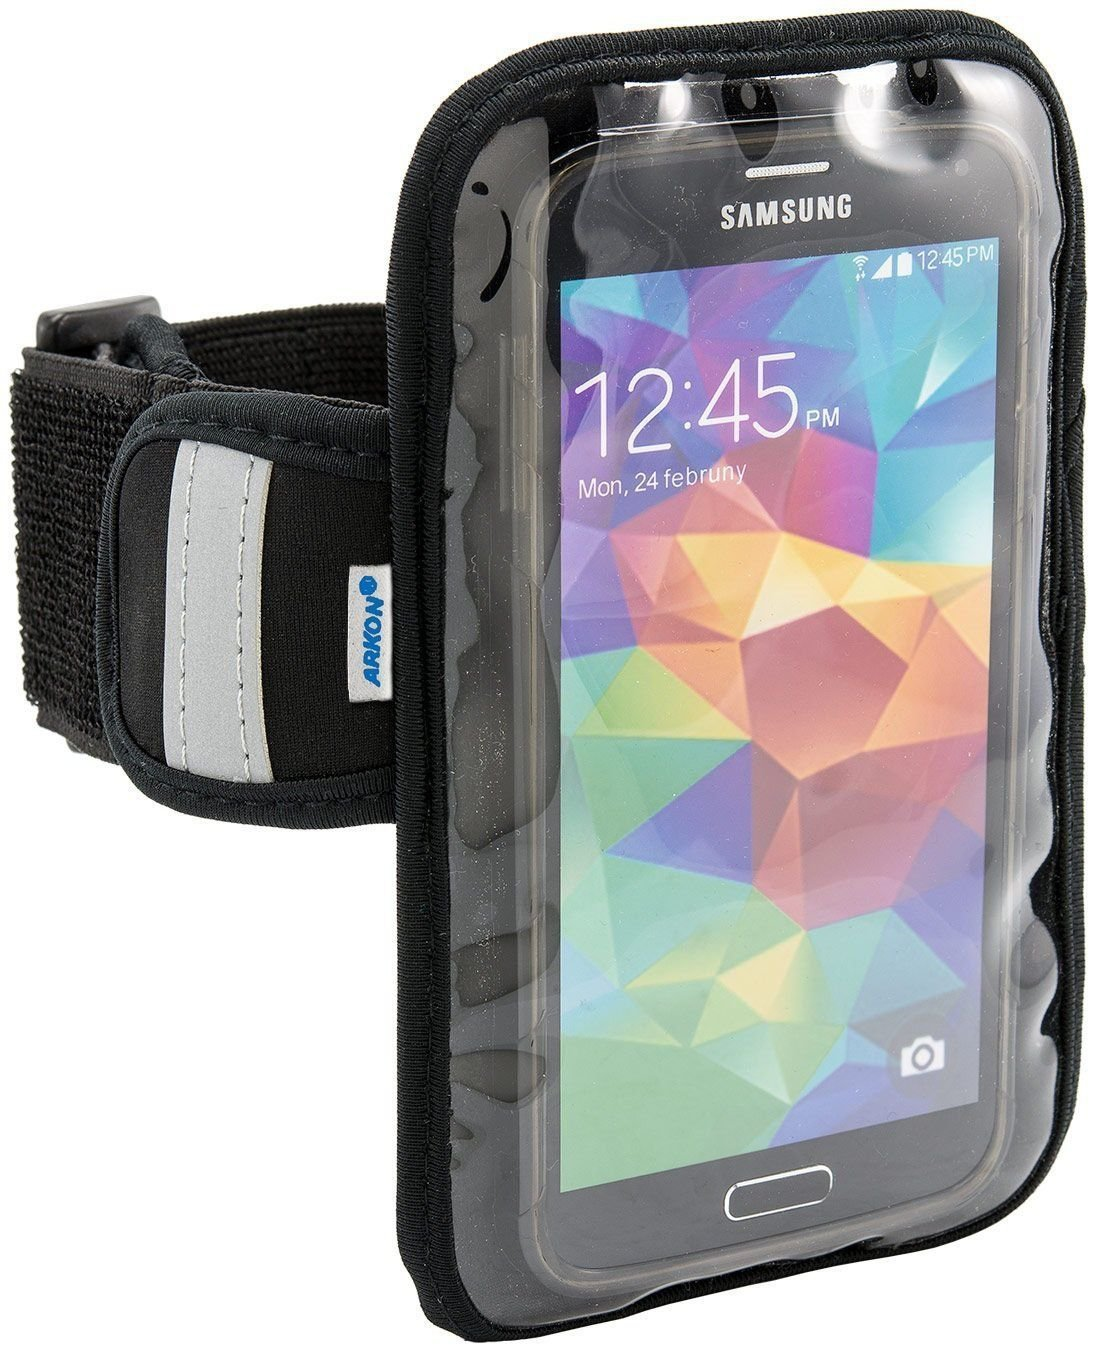 Sports Armband for Apple iPhone 6 Plus Samsung Galaxy S5 Note 3 Mega Phones